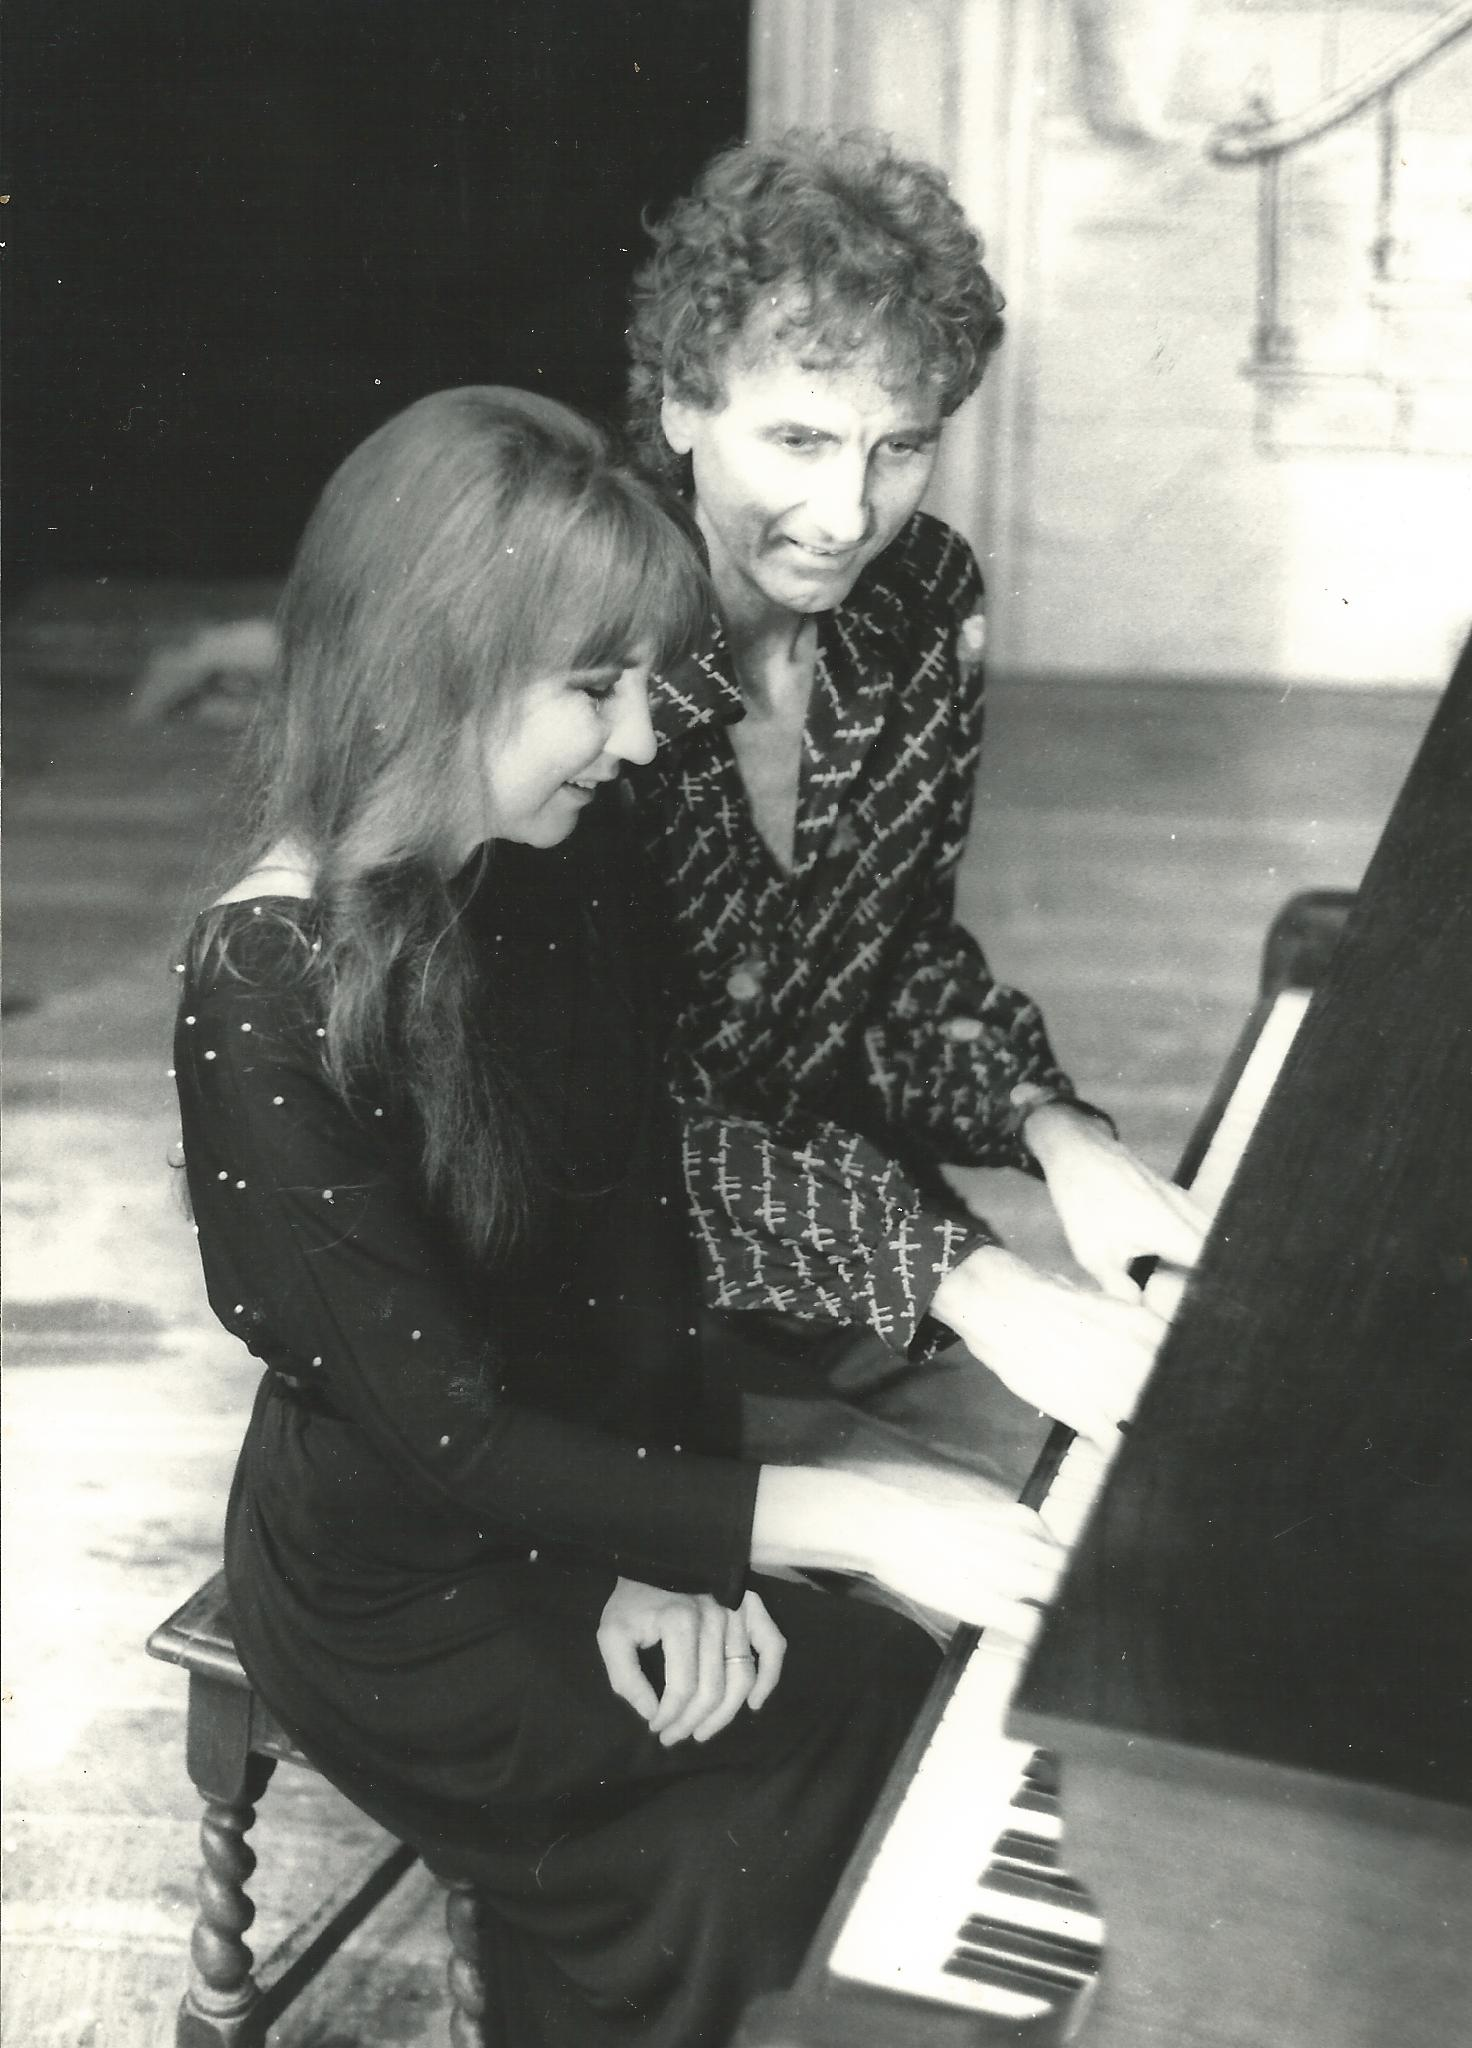 Judith and her late husband Ron Edgeworth playing piano together, late 1970s